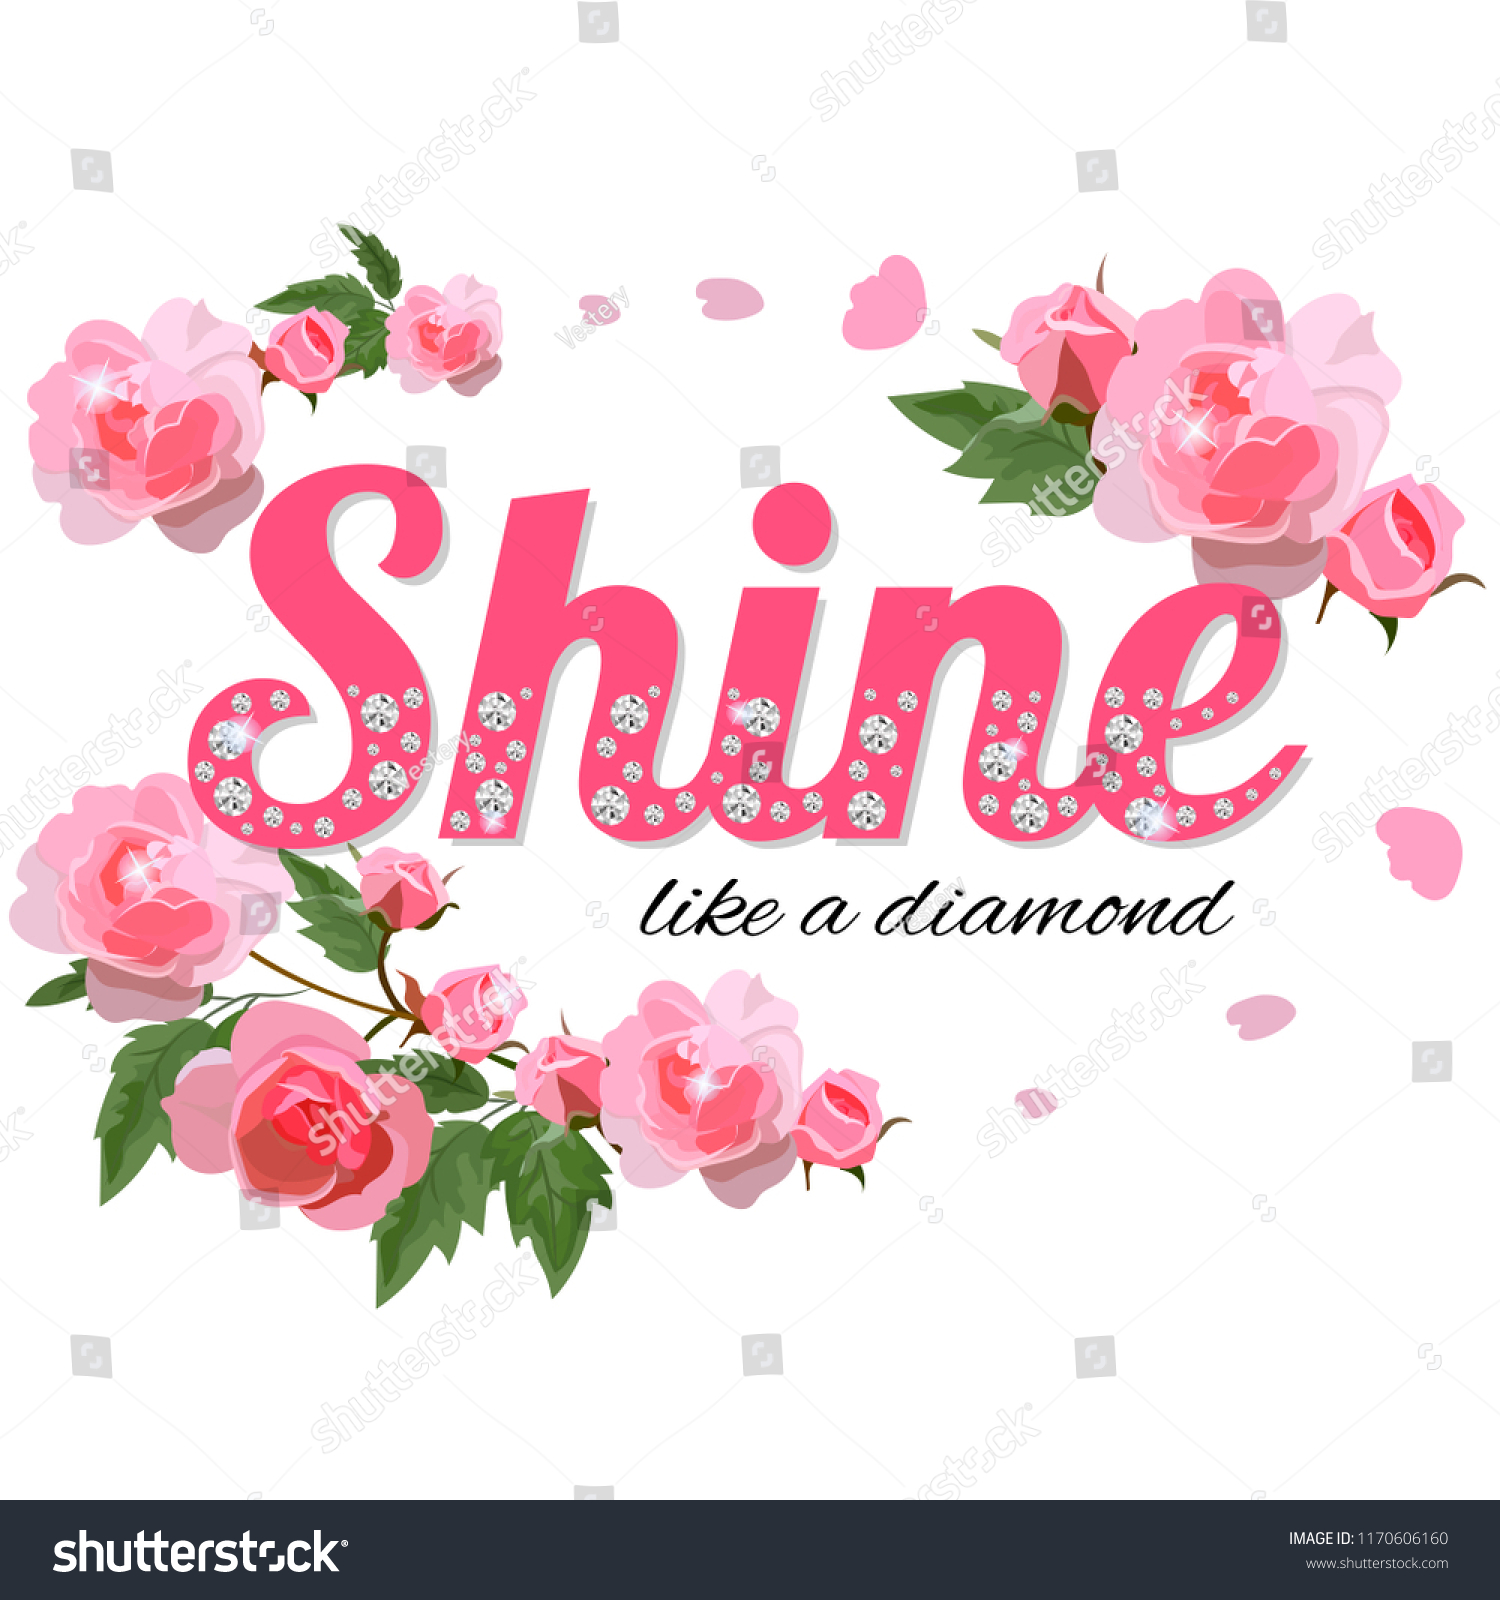 Shine Like Diamond Slogan Rhinestones Branches Stock Vector Royalty